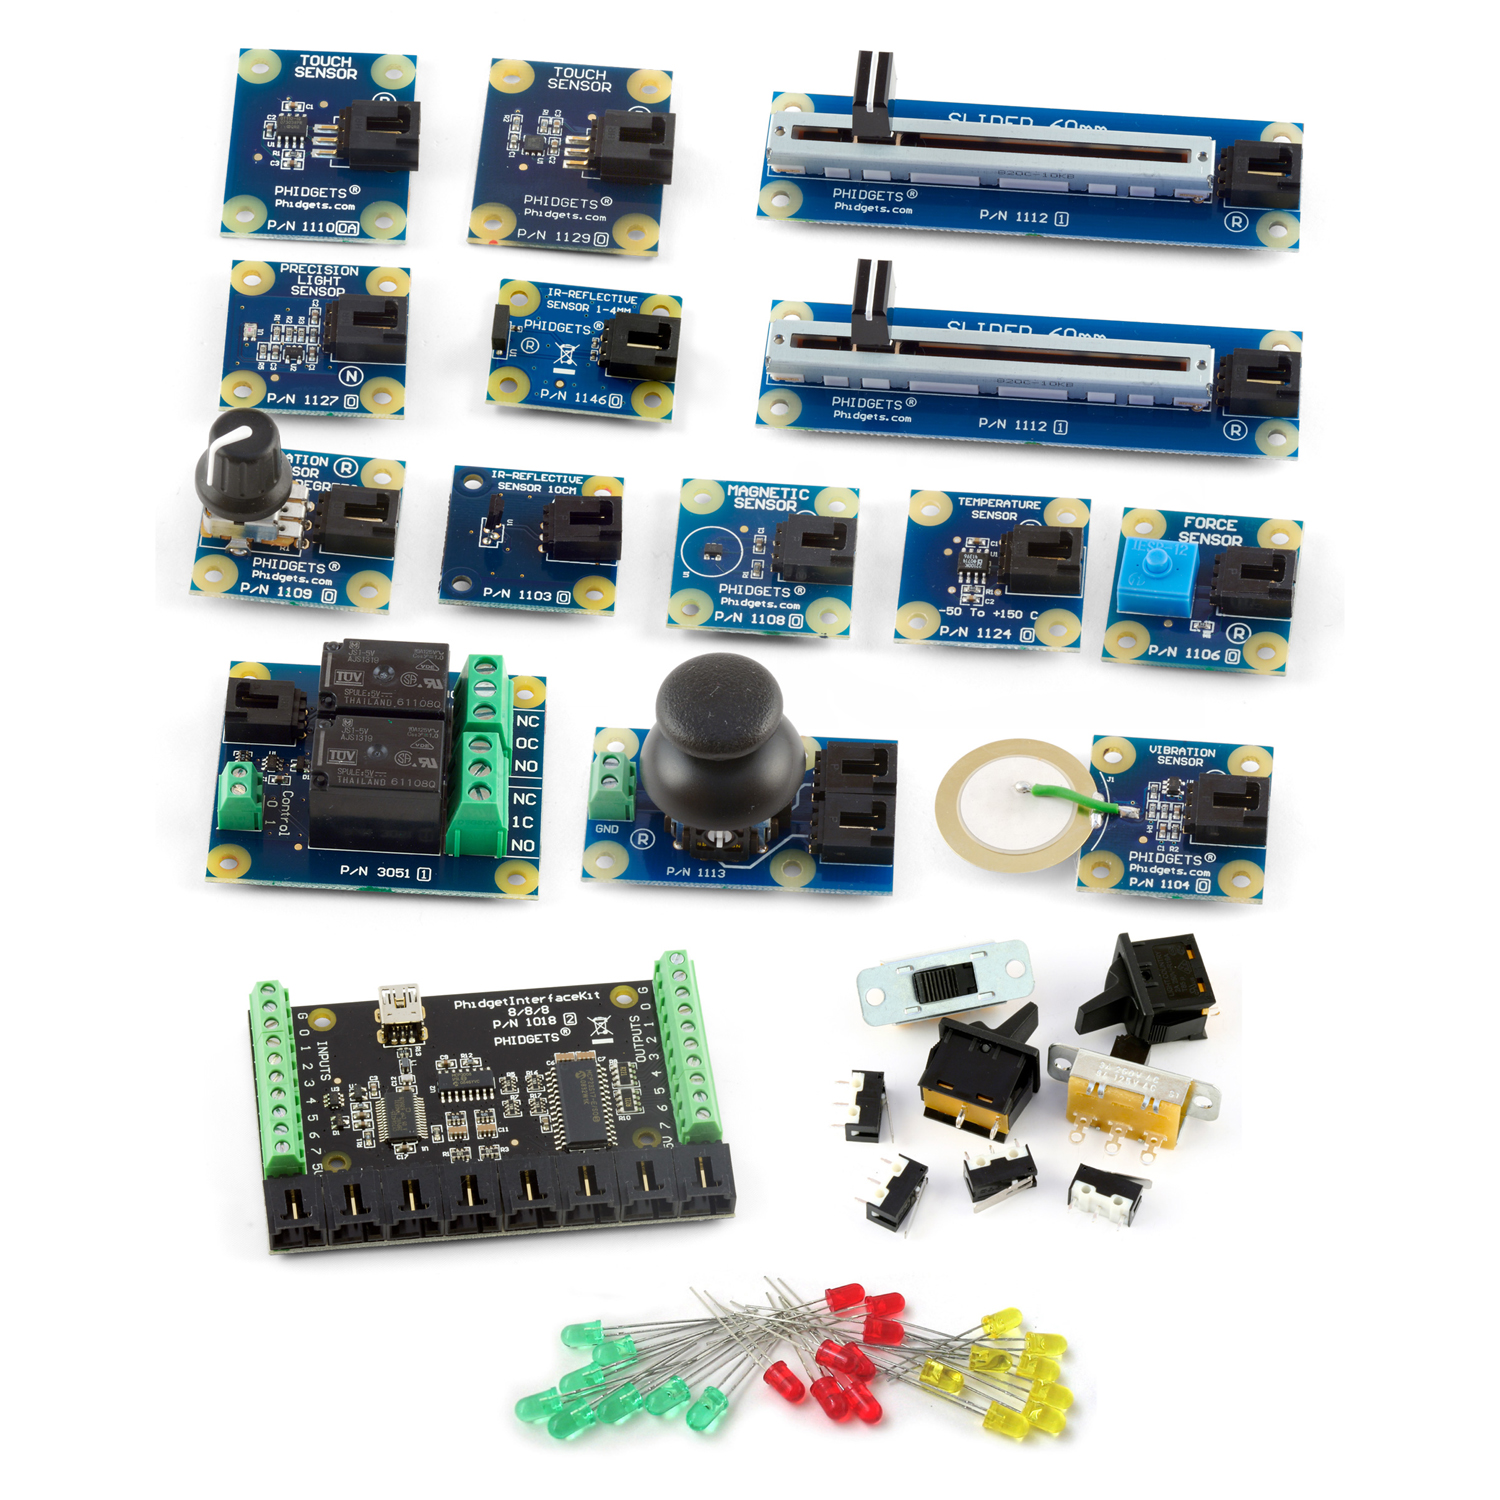 Phidget Interface Kit Package #2